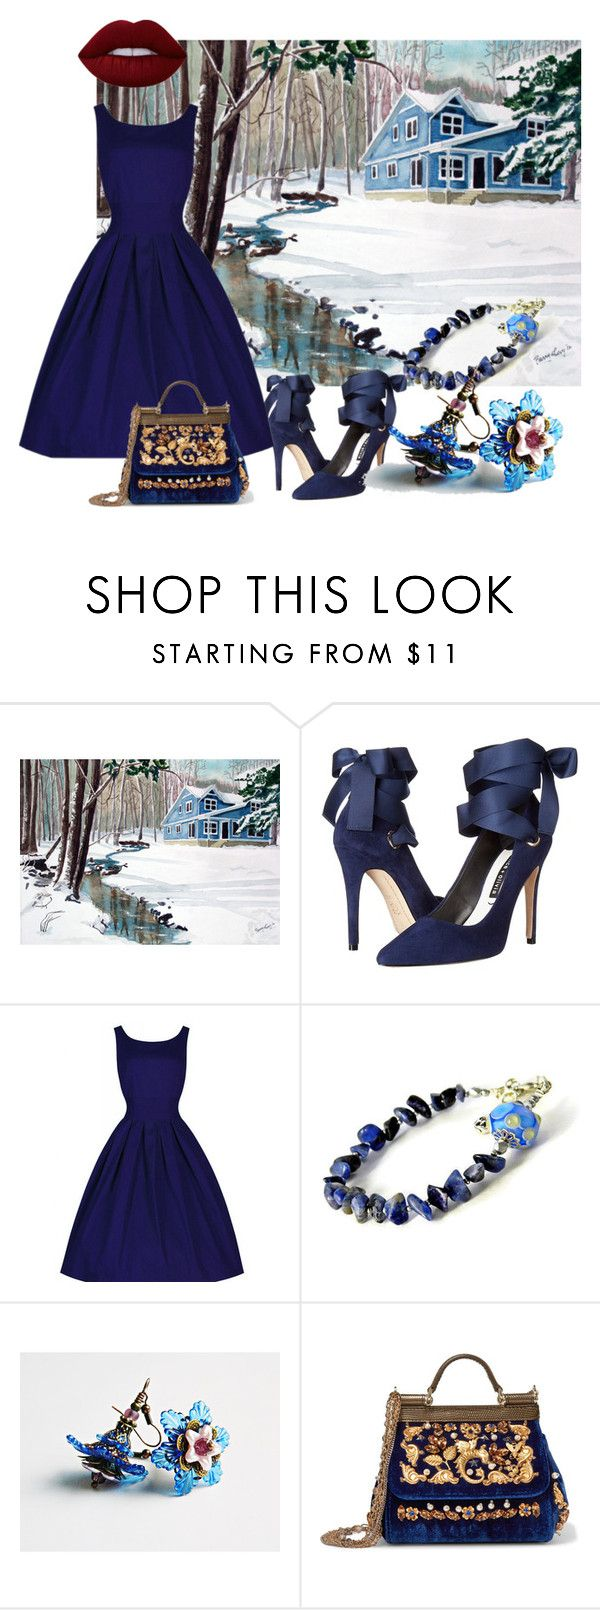 """""""Footsteps in the Snow"""" by mariannemerceria ❤ liked on Polyvore featuring Alice + Olivia, Chicnova Fashion, Dolce&Gabbana, Lime Crime, art and MarianneMerceria"""